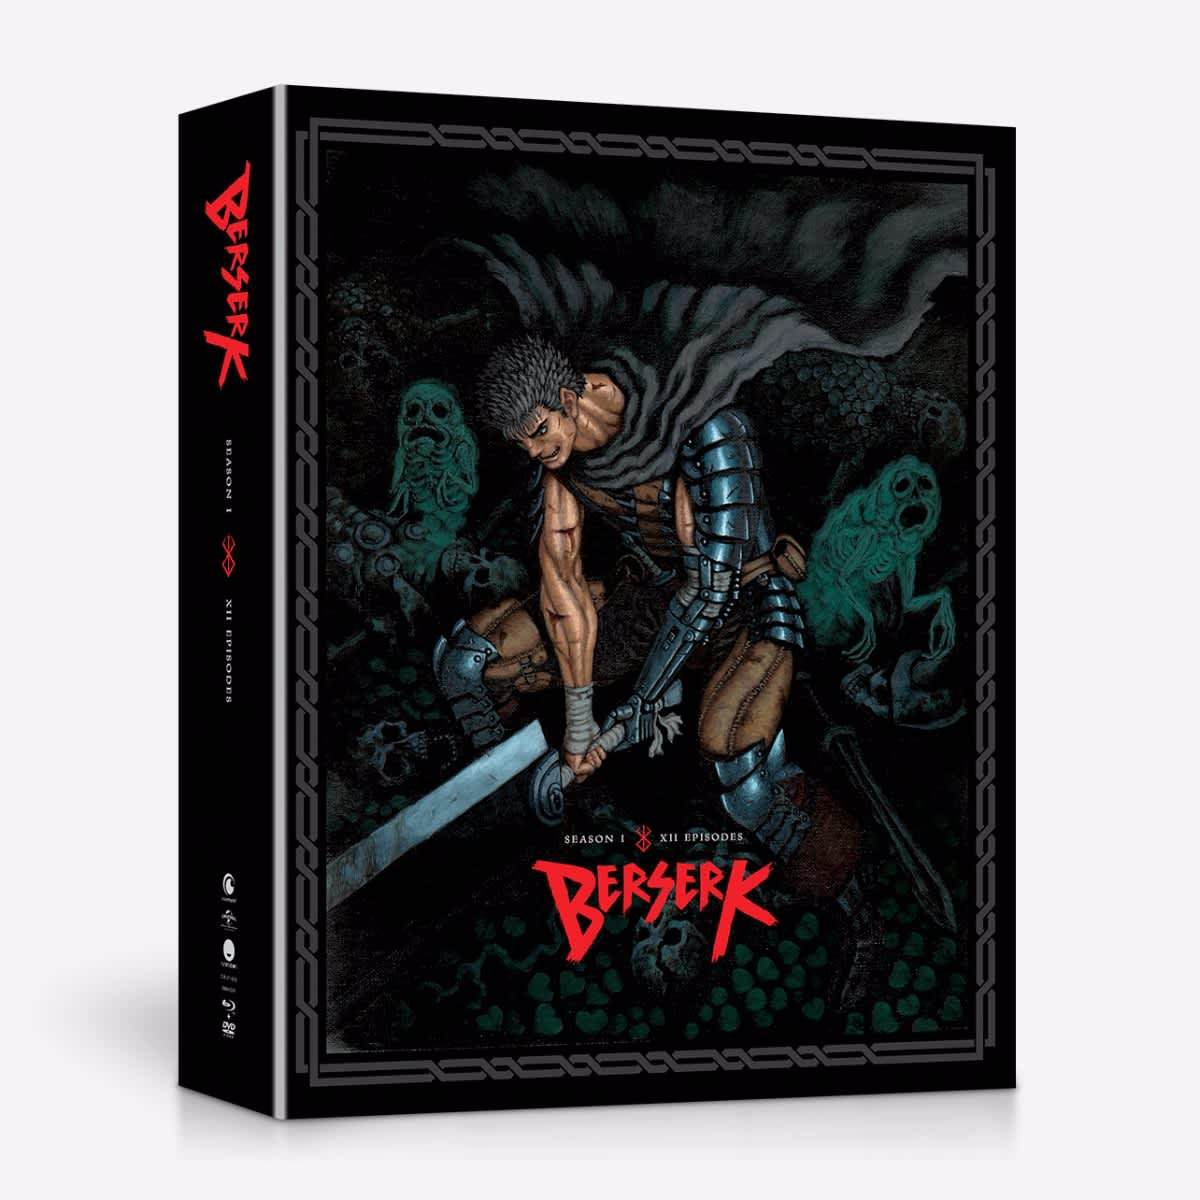 Berserk Season 1 Limited Edition Blu-ray/DVD 704400014291